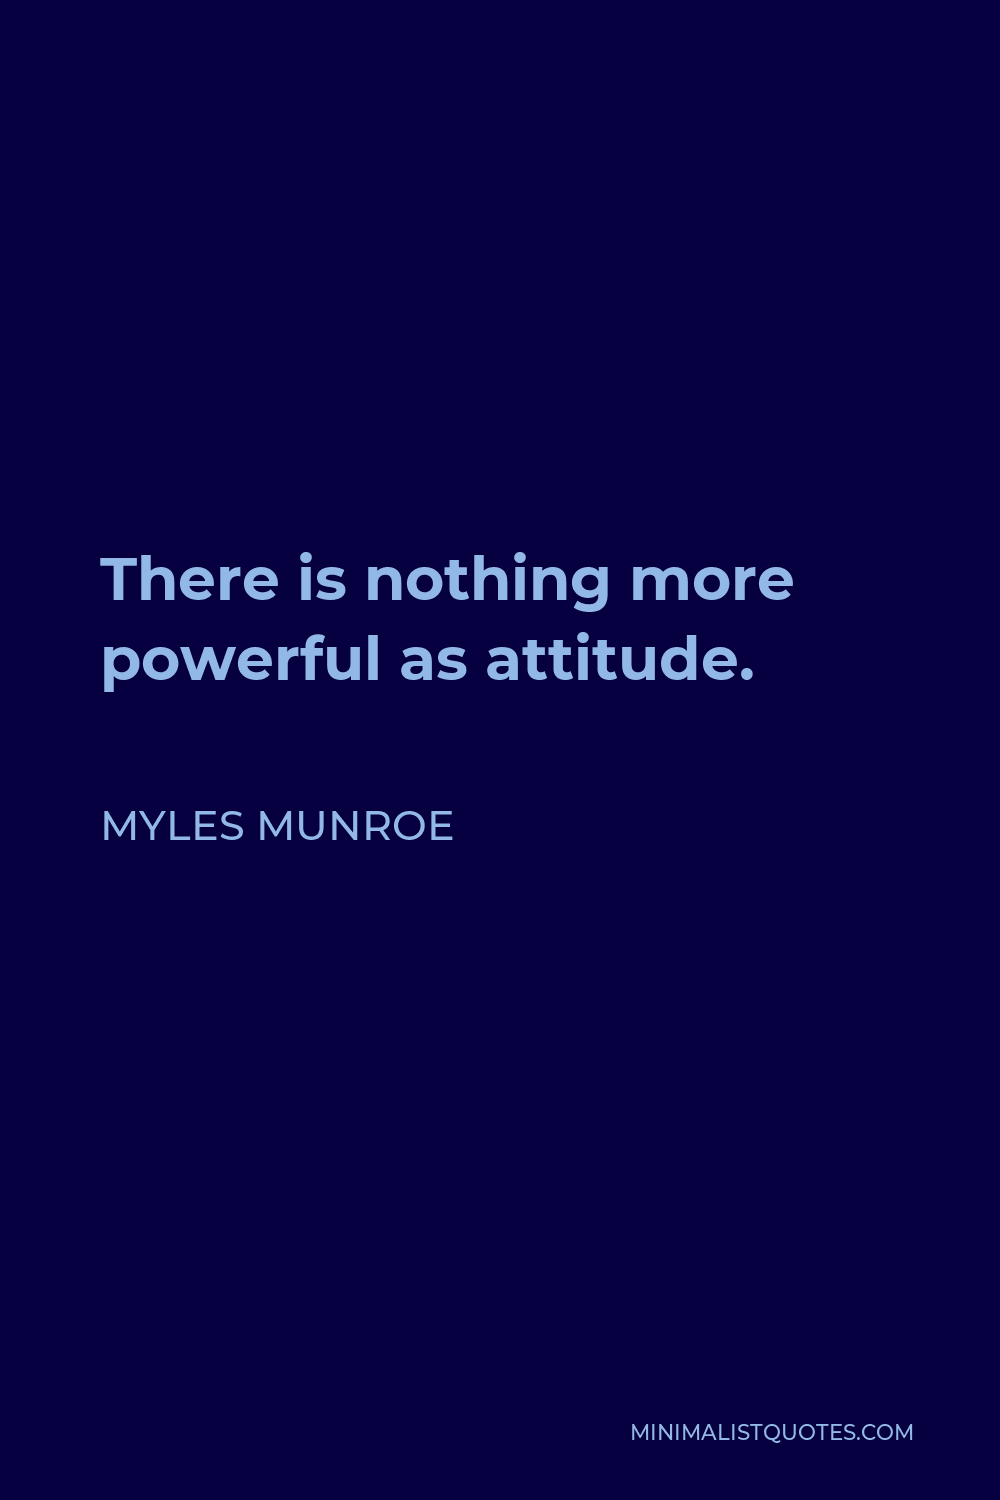 Myles Munroe Quote - There is nothing more powerful as attitude.